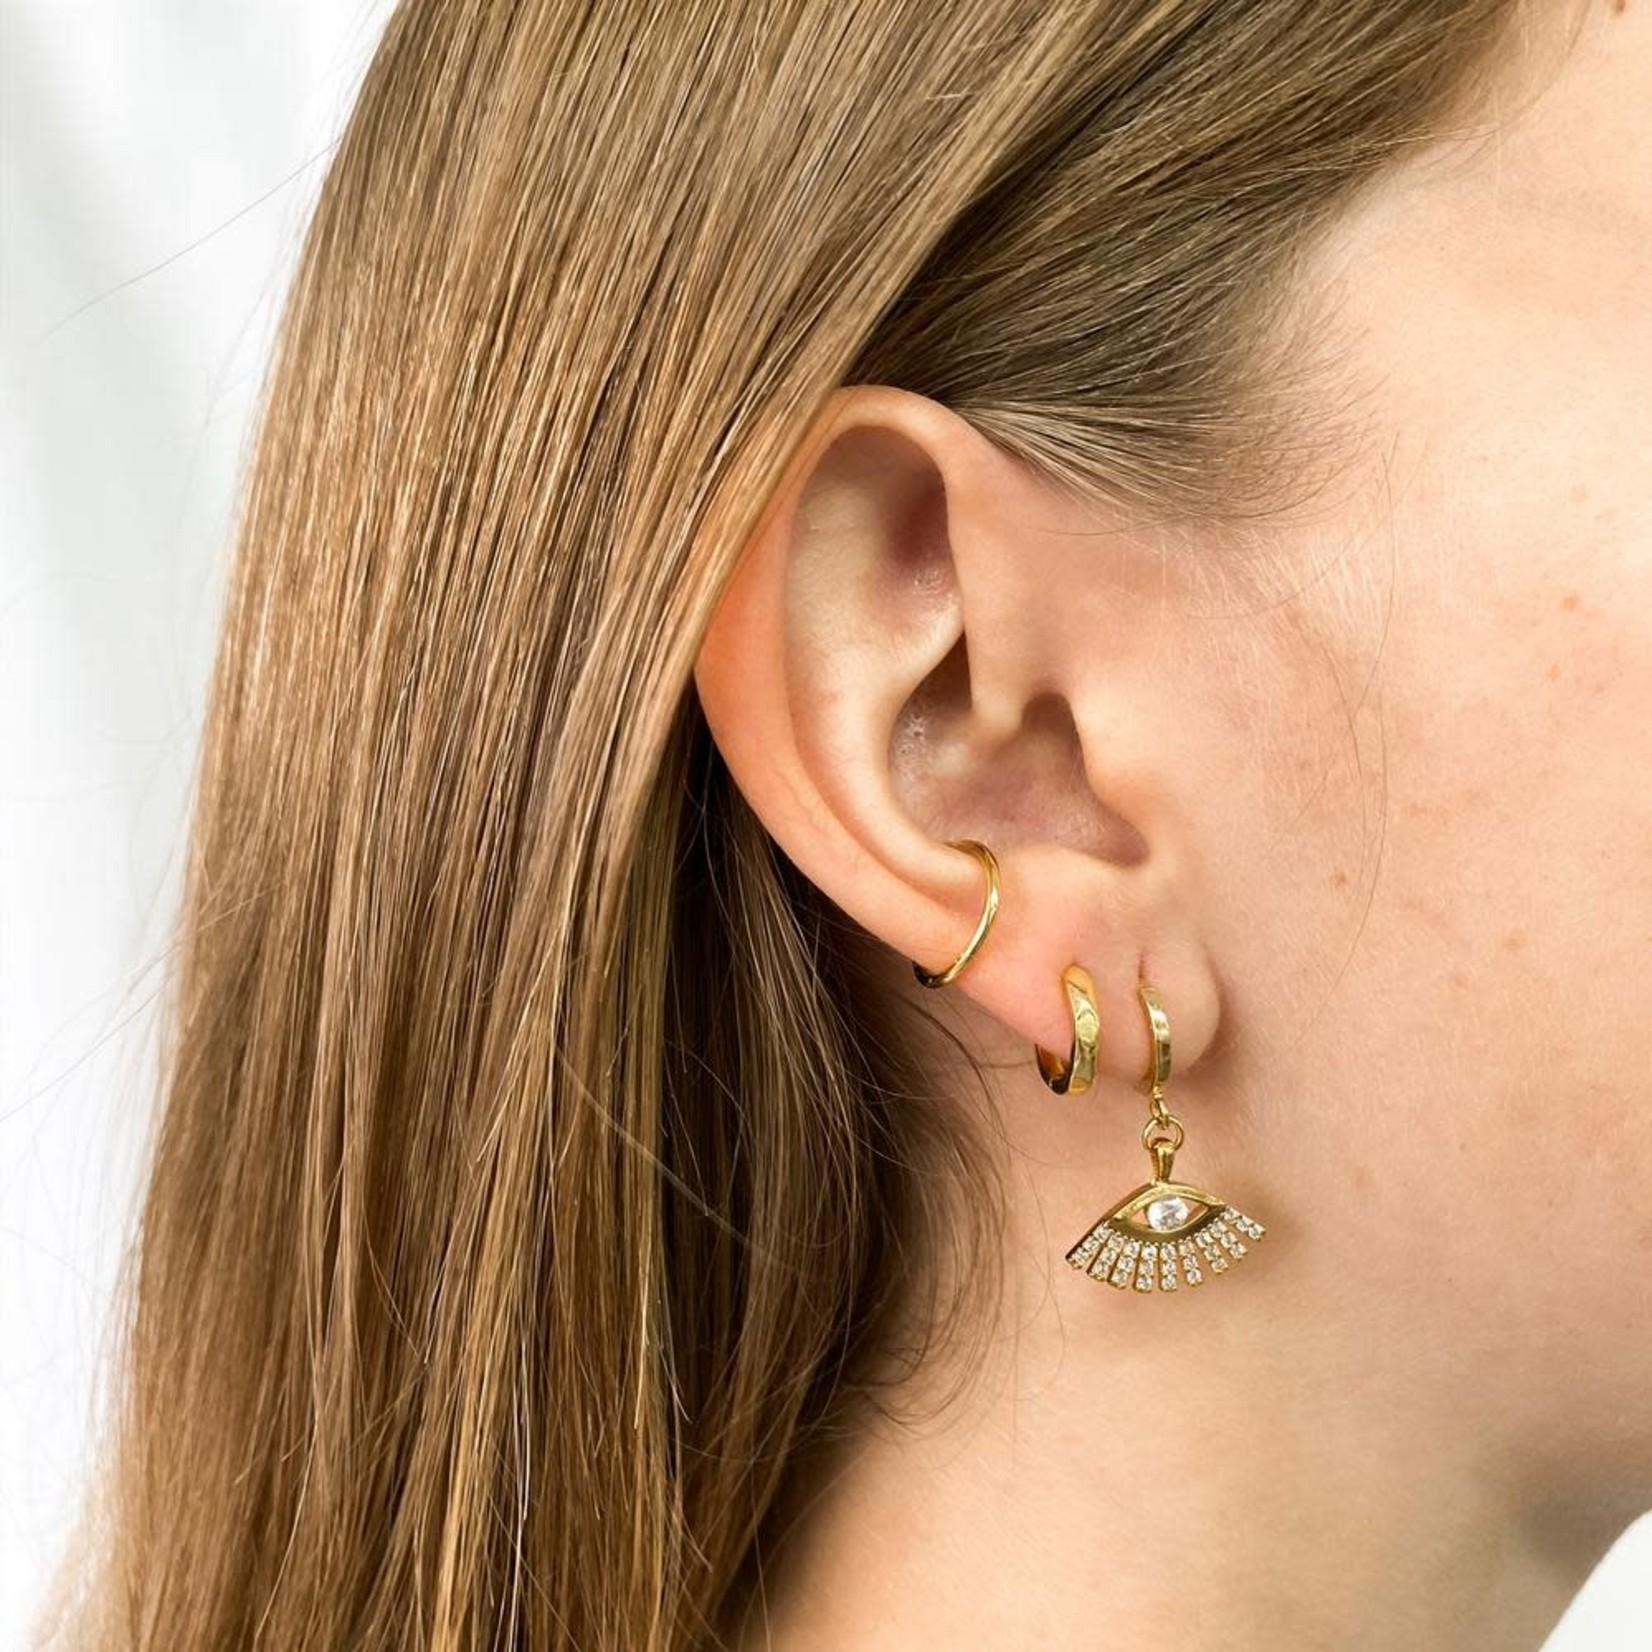 Horace Jewelry Horace fausse boucle d'oreille BASIC OR